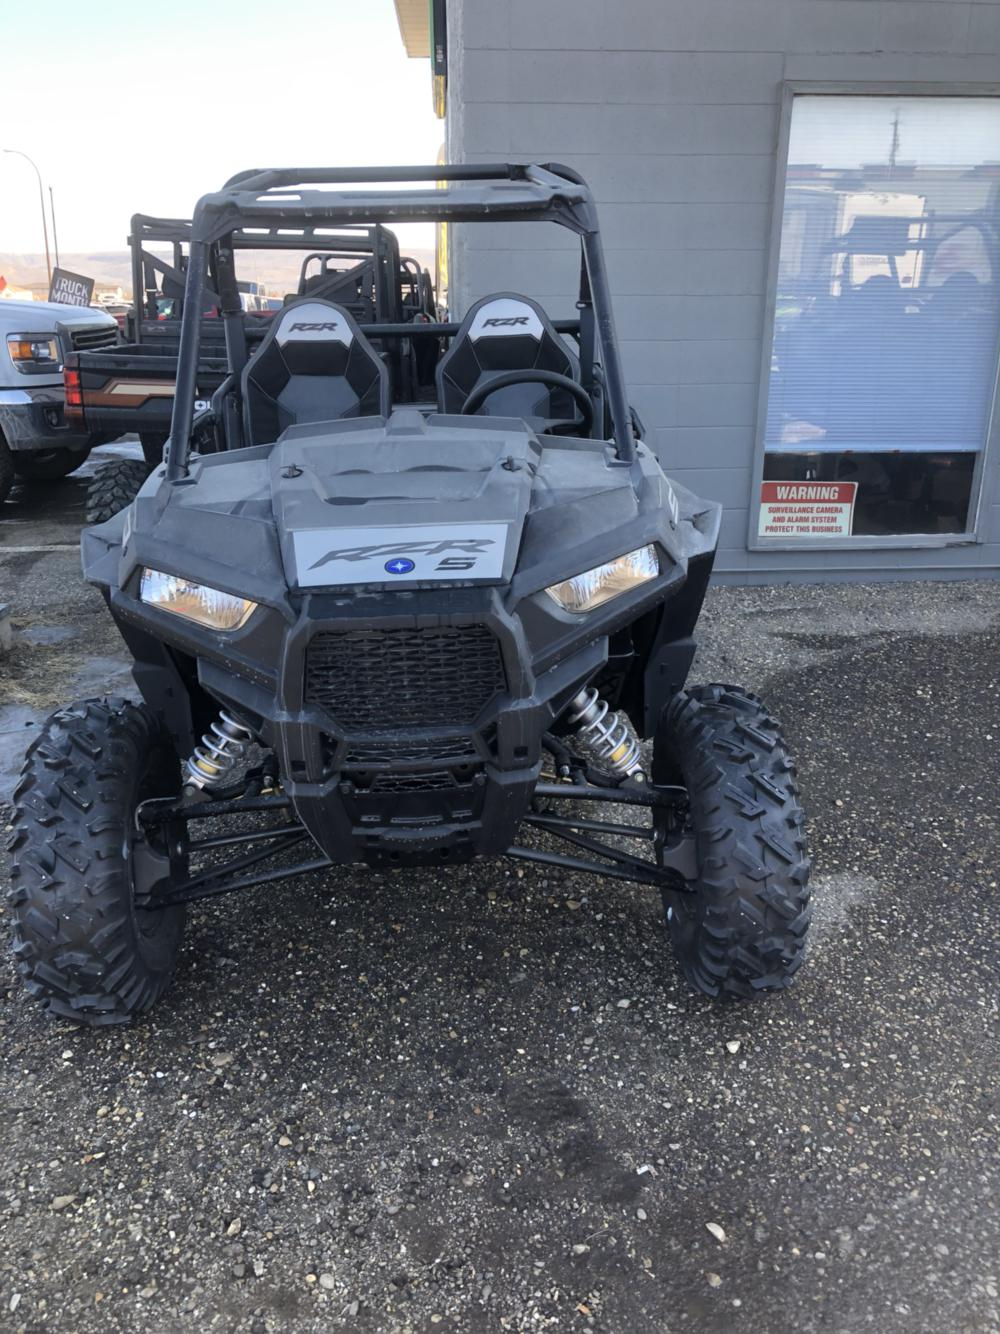 medium resolution of 2019 polaris industries rzr s 900 eps black pearl